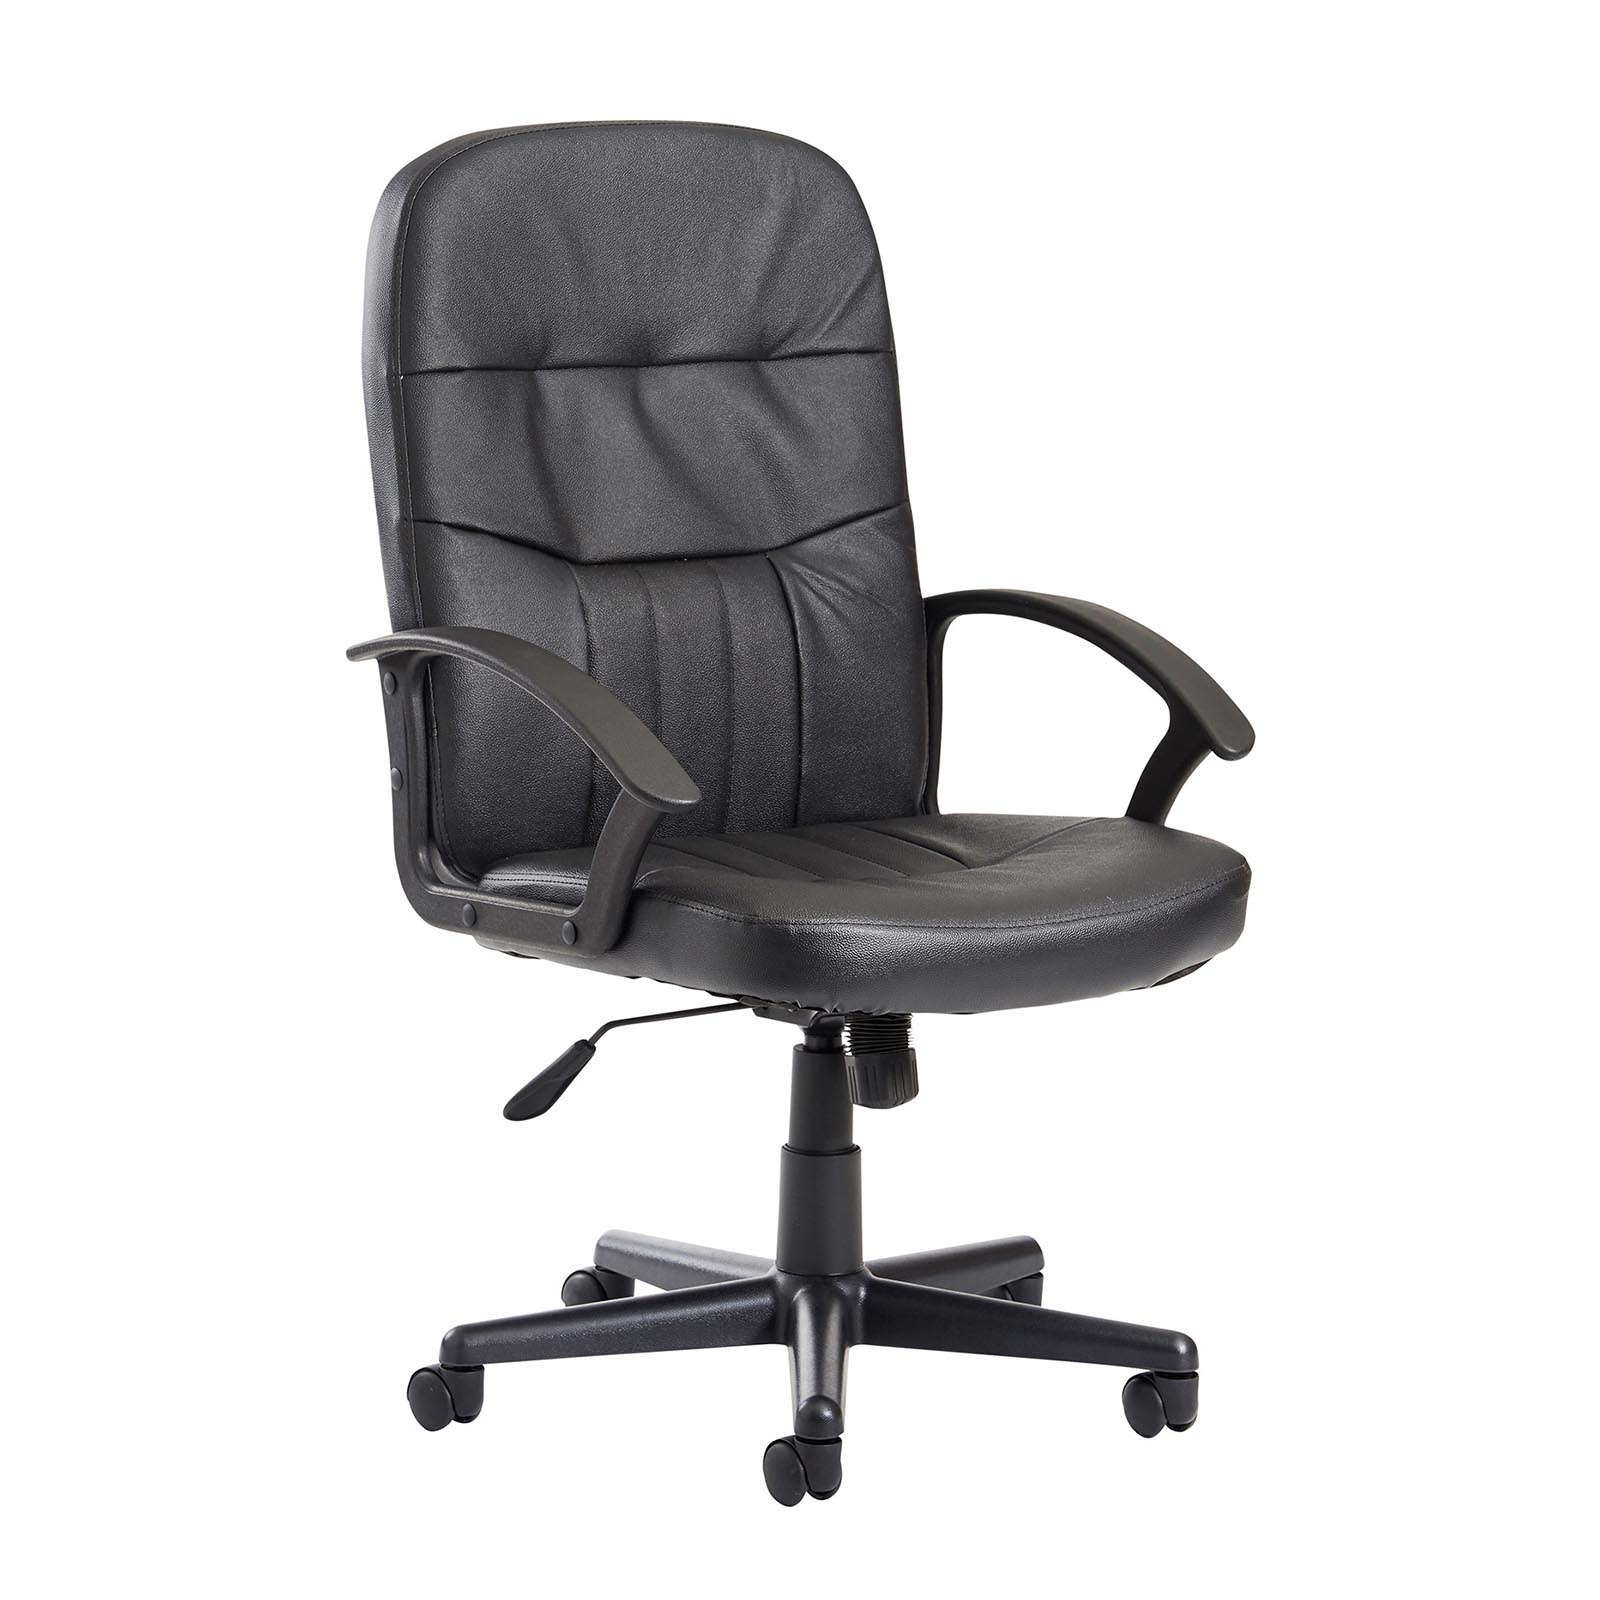 Desk Chairs Cavalier high back managers chair - black leather faced